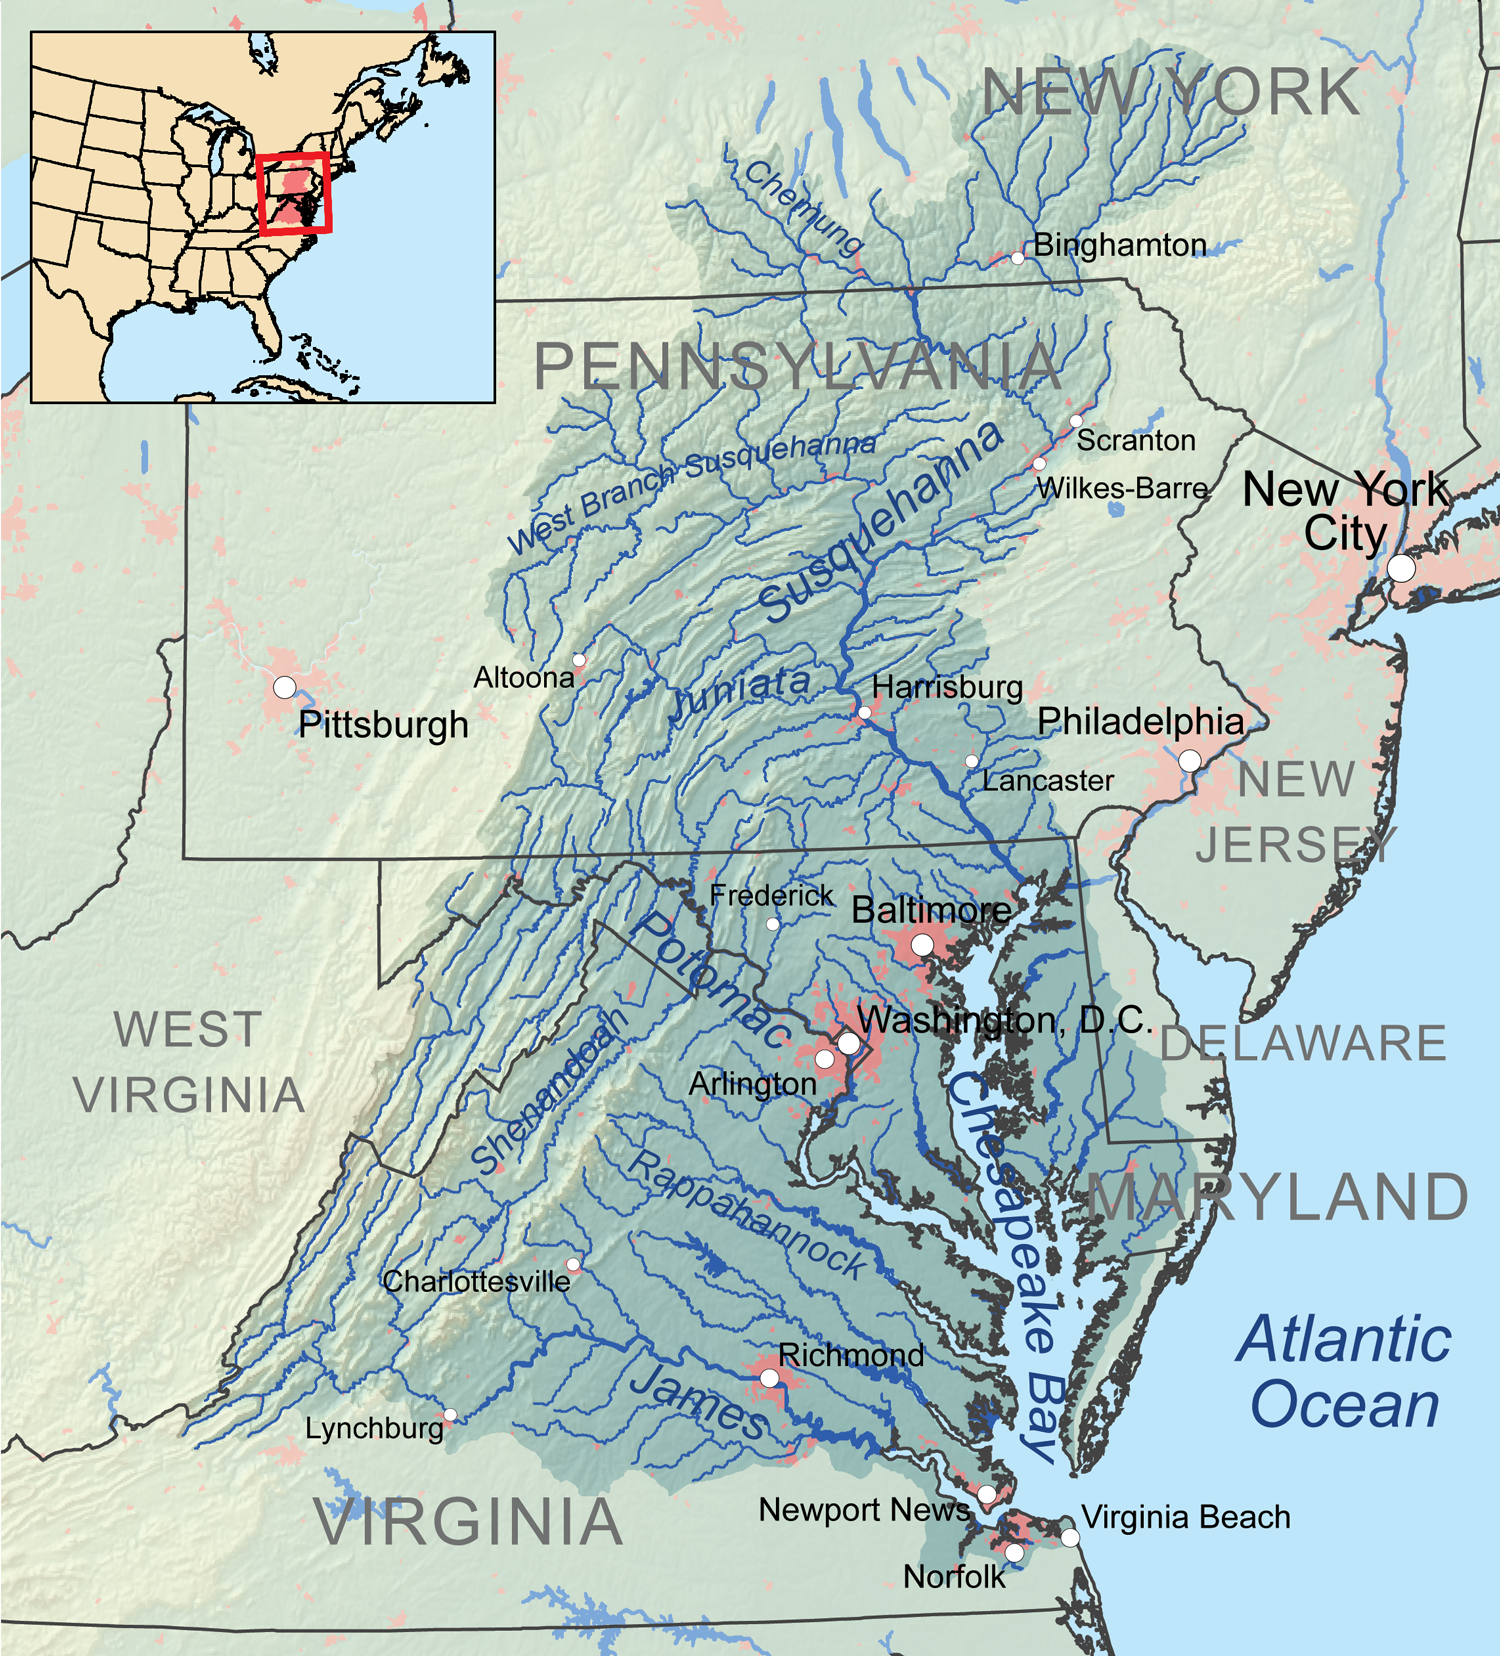 Map Courtesy of Karl Musser, author, published on Wikipedia